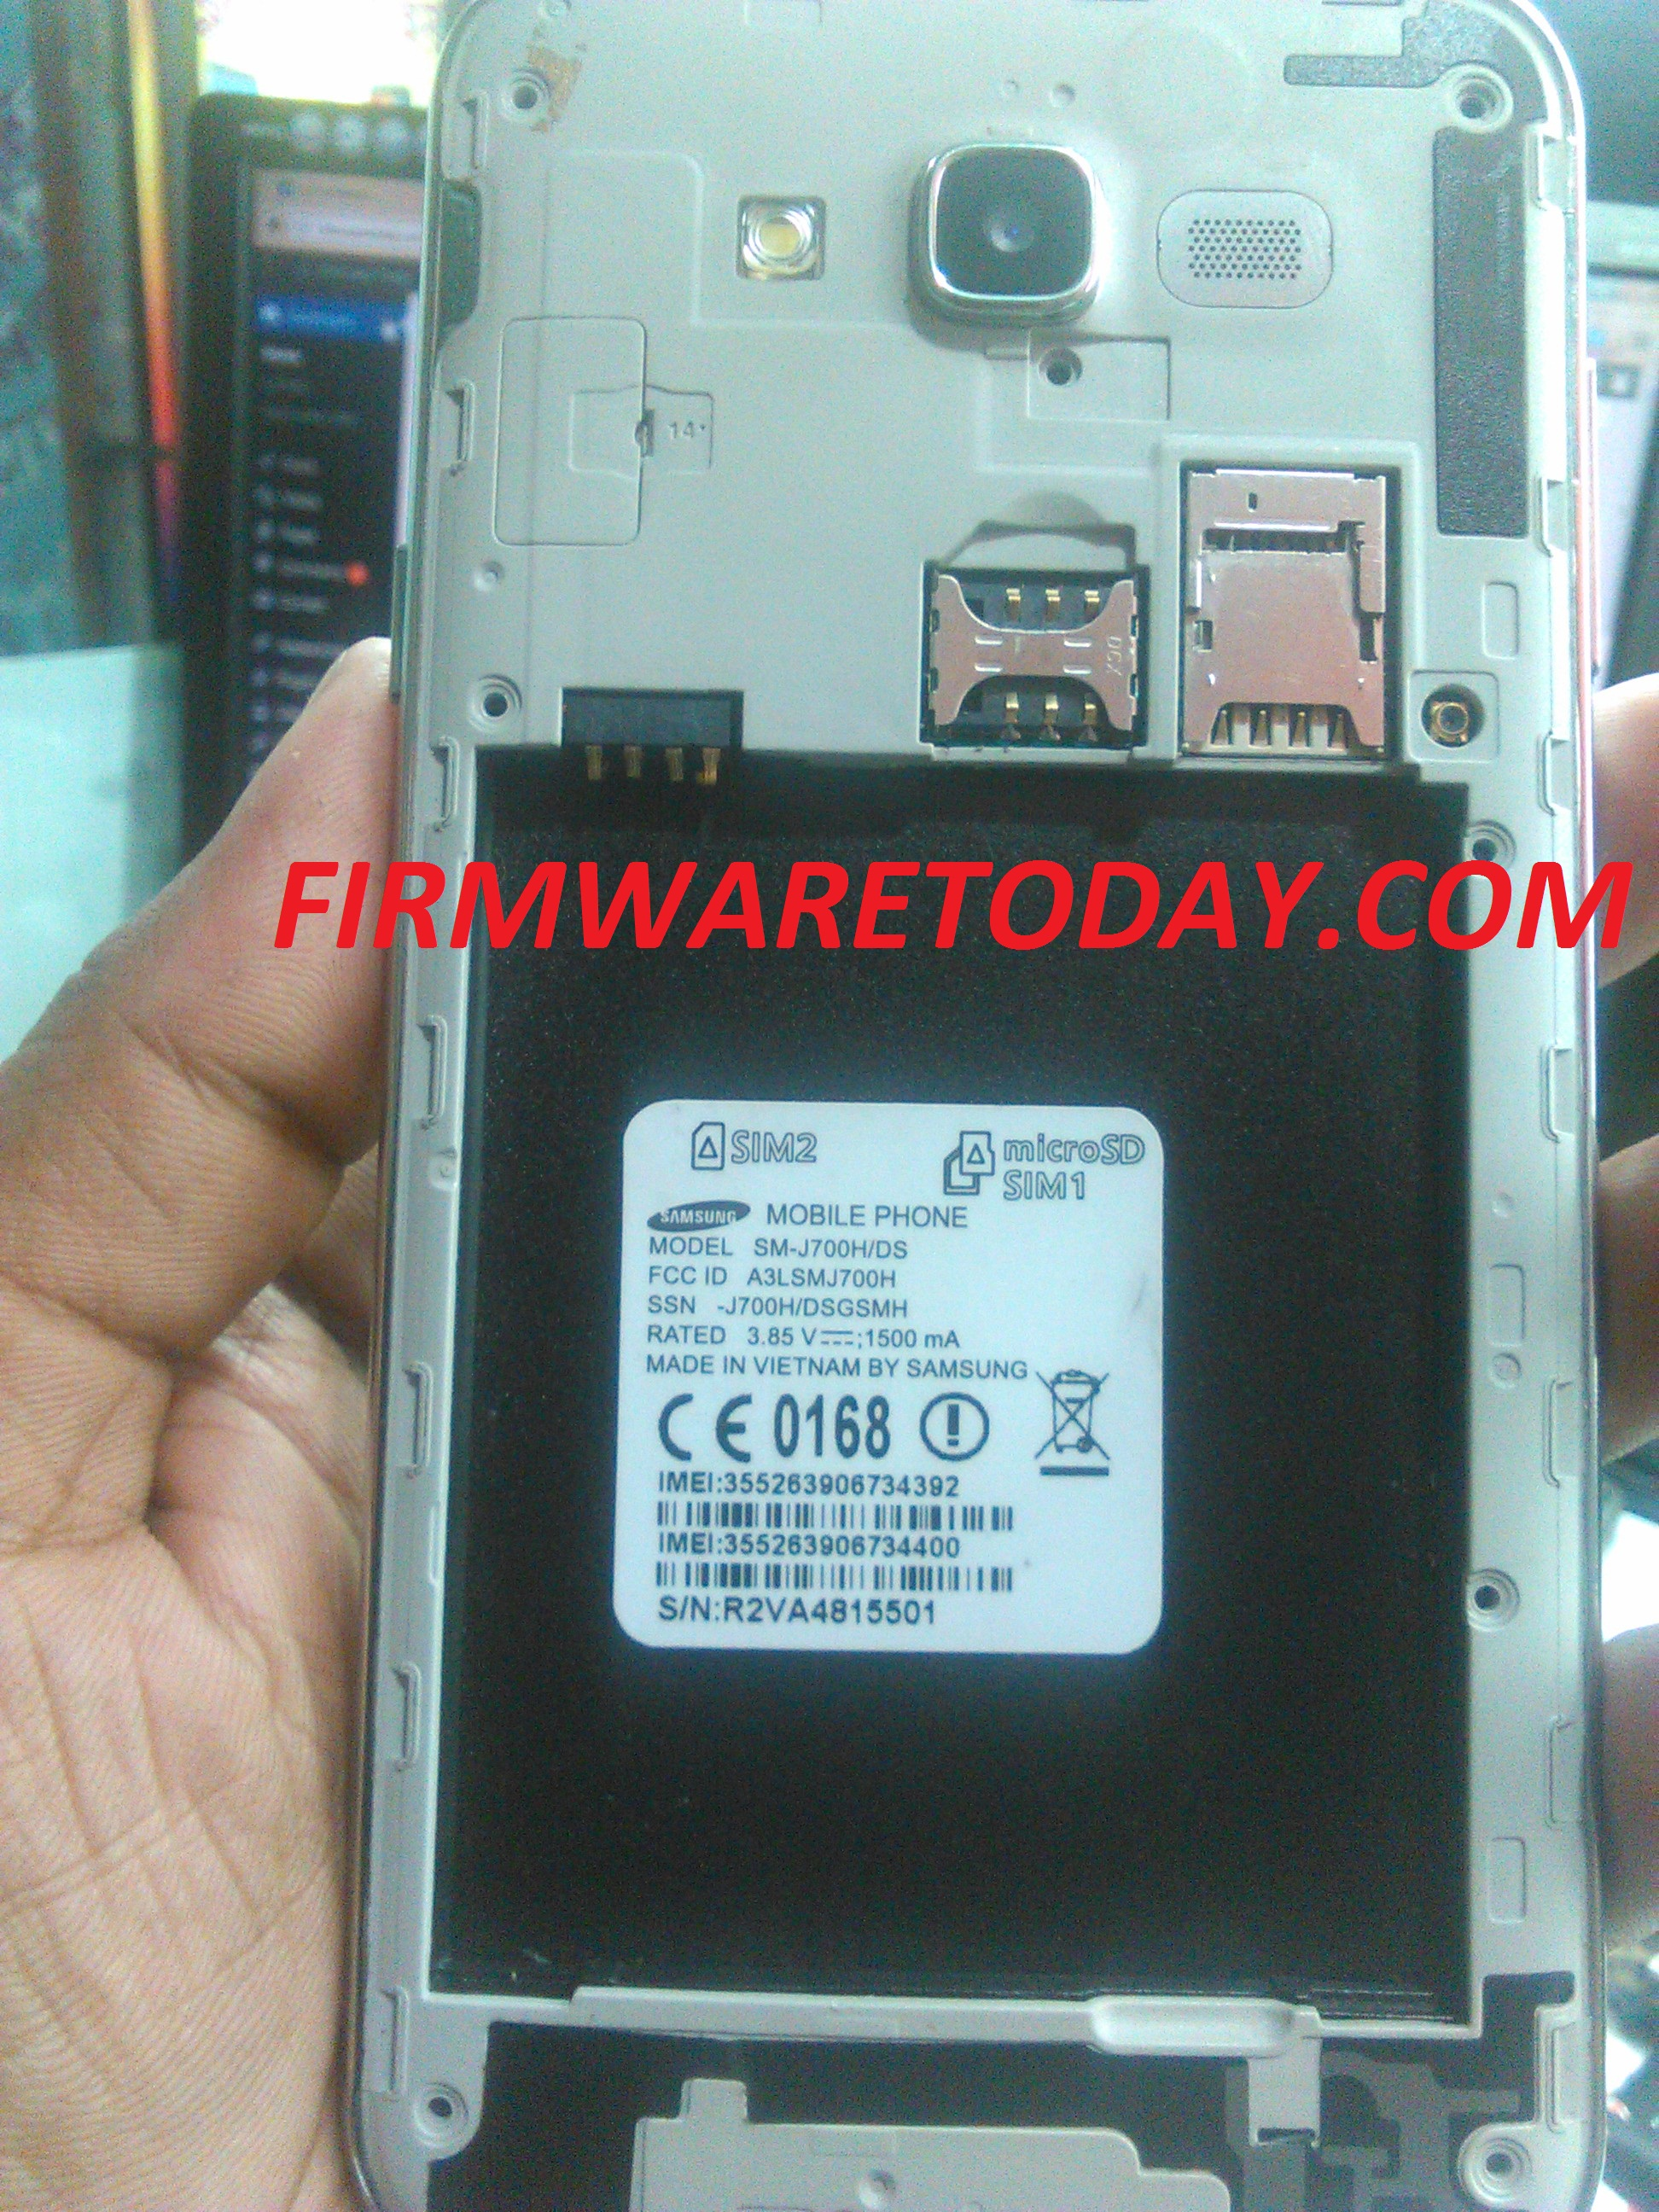 SAMSUNG GALAXY J7 SM-J700H/DS OFFICIAL FIRMWARE MT6589 OR MT6583 (3rd version) 2000% tested by firmwaretoday.com